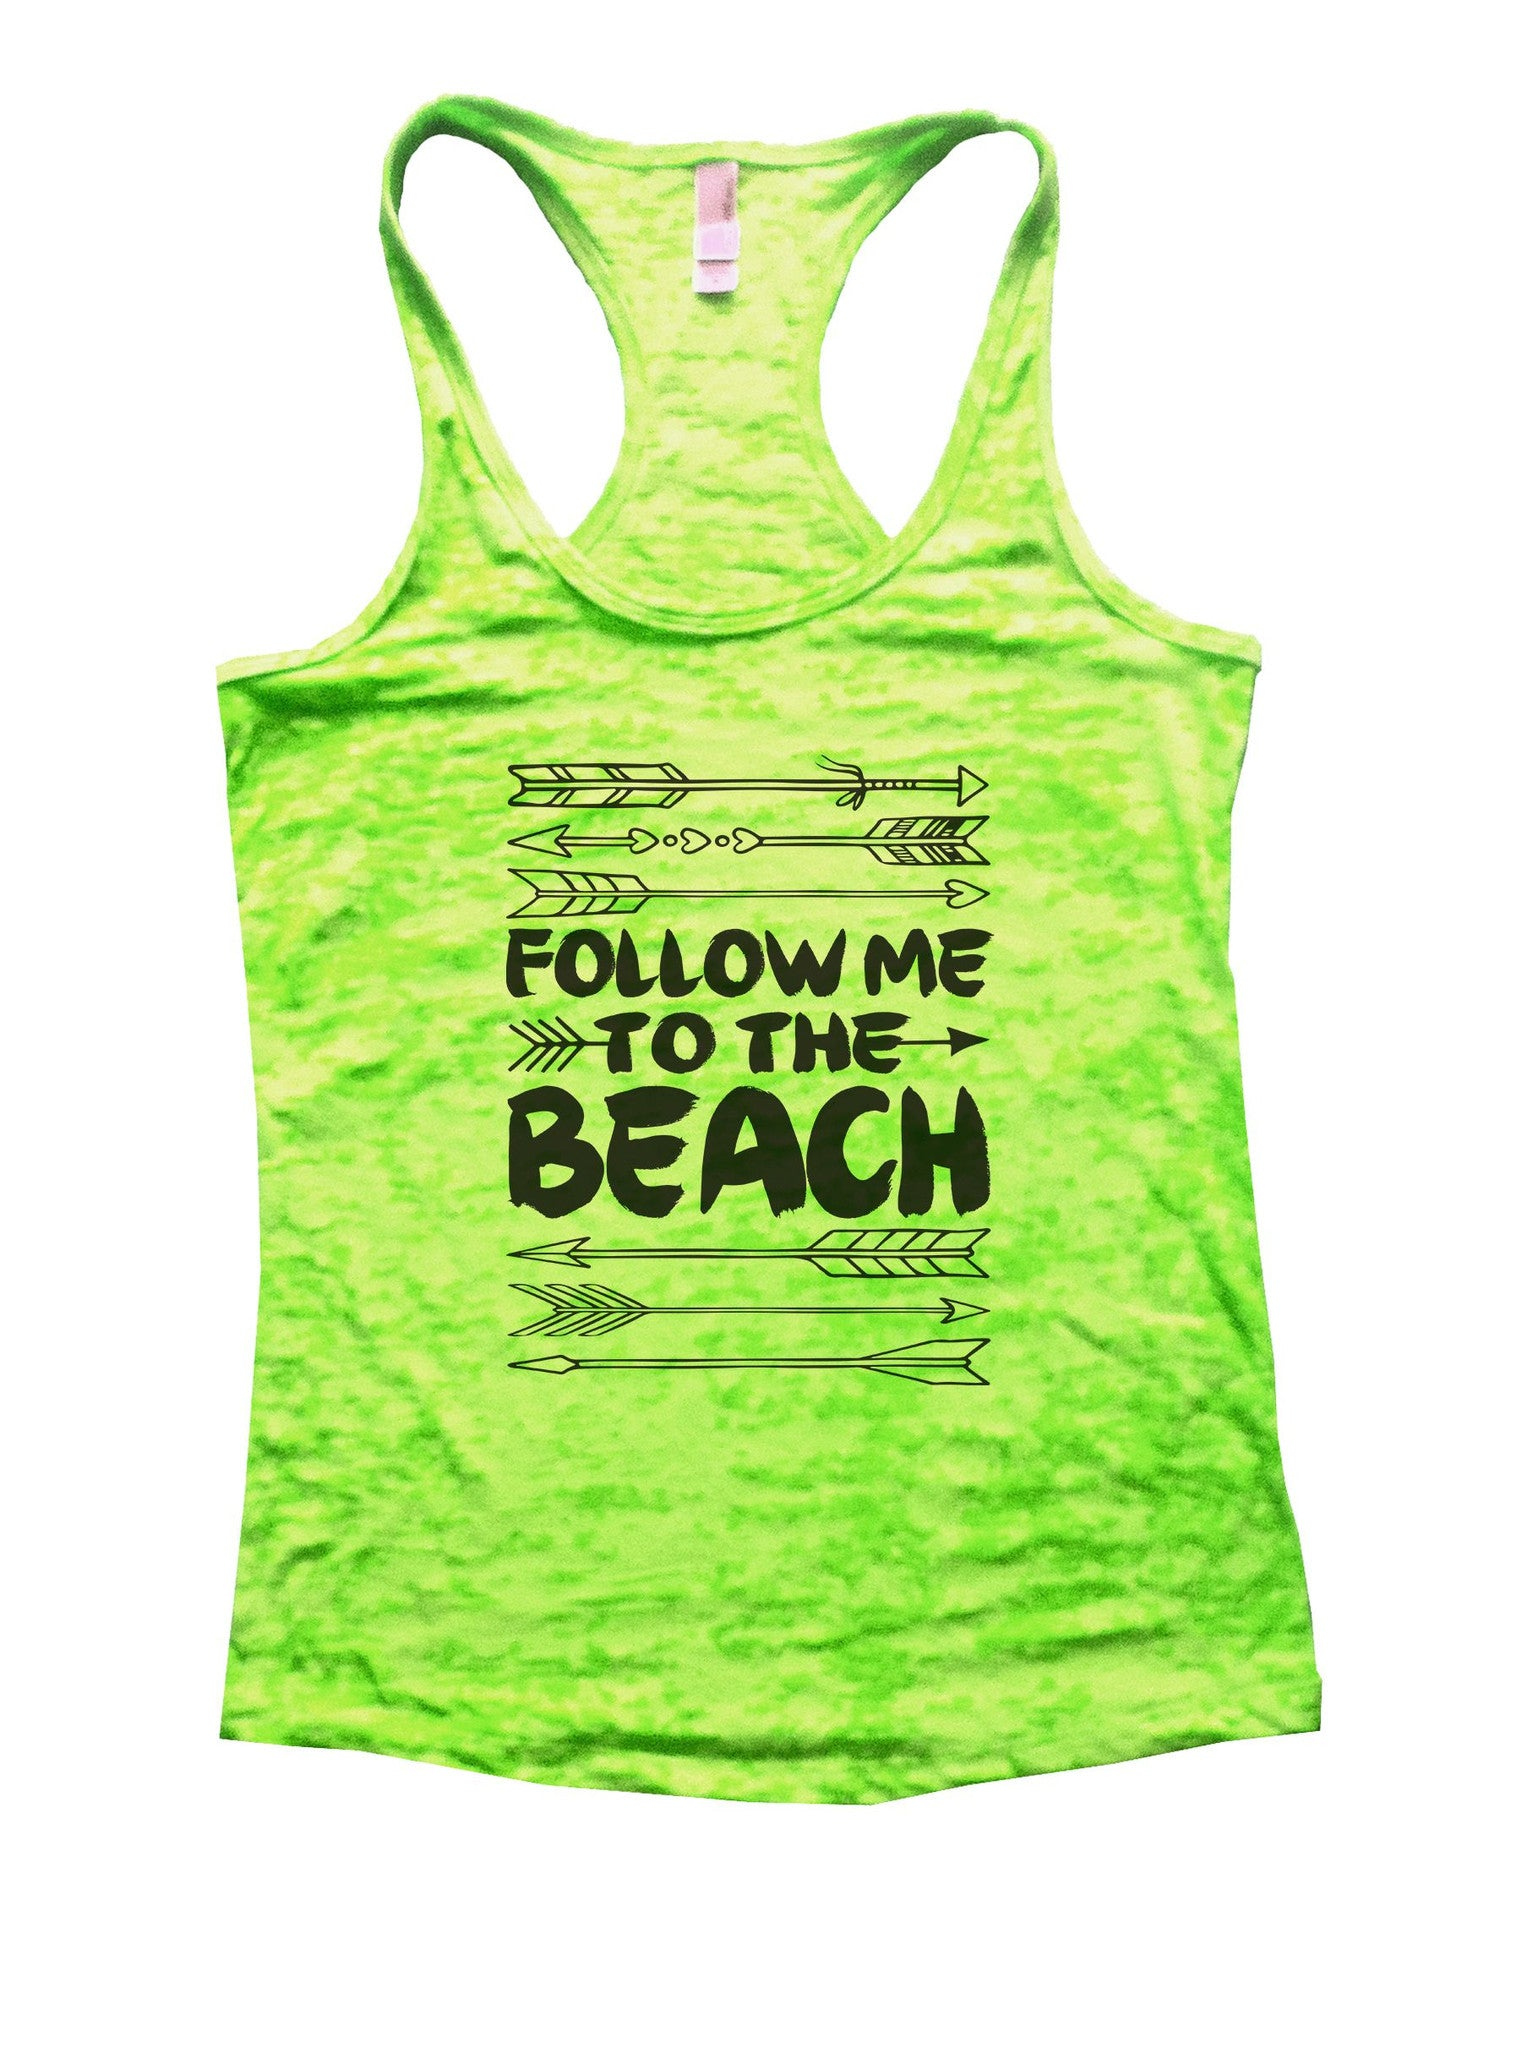 Follow Me To The Beach Burnout Tank Top By BurnoutTankTops.com - 931 - Funny Shirts Tank Tops Burnouts and Triblends  - 3